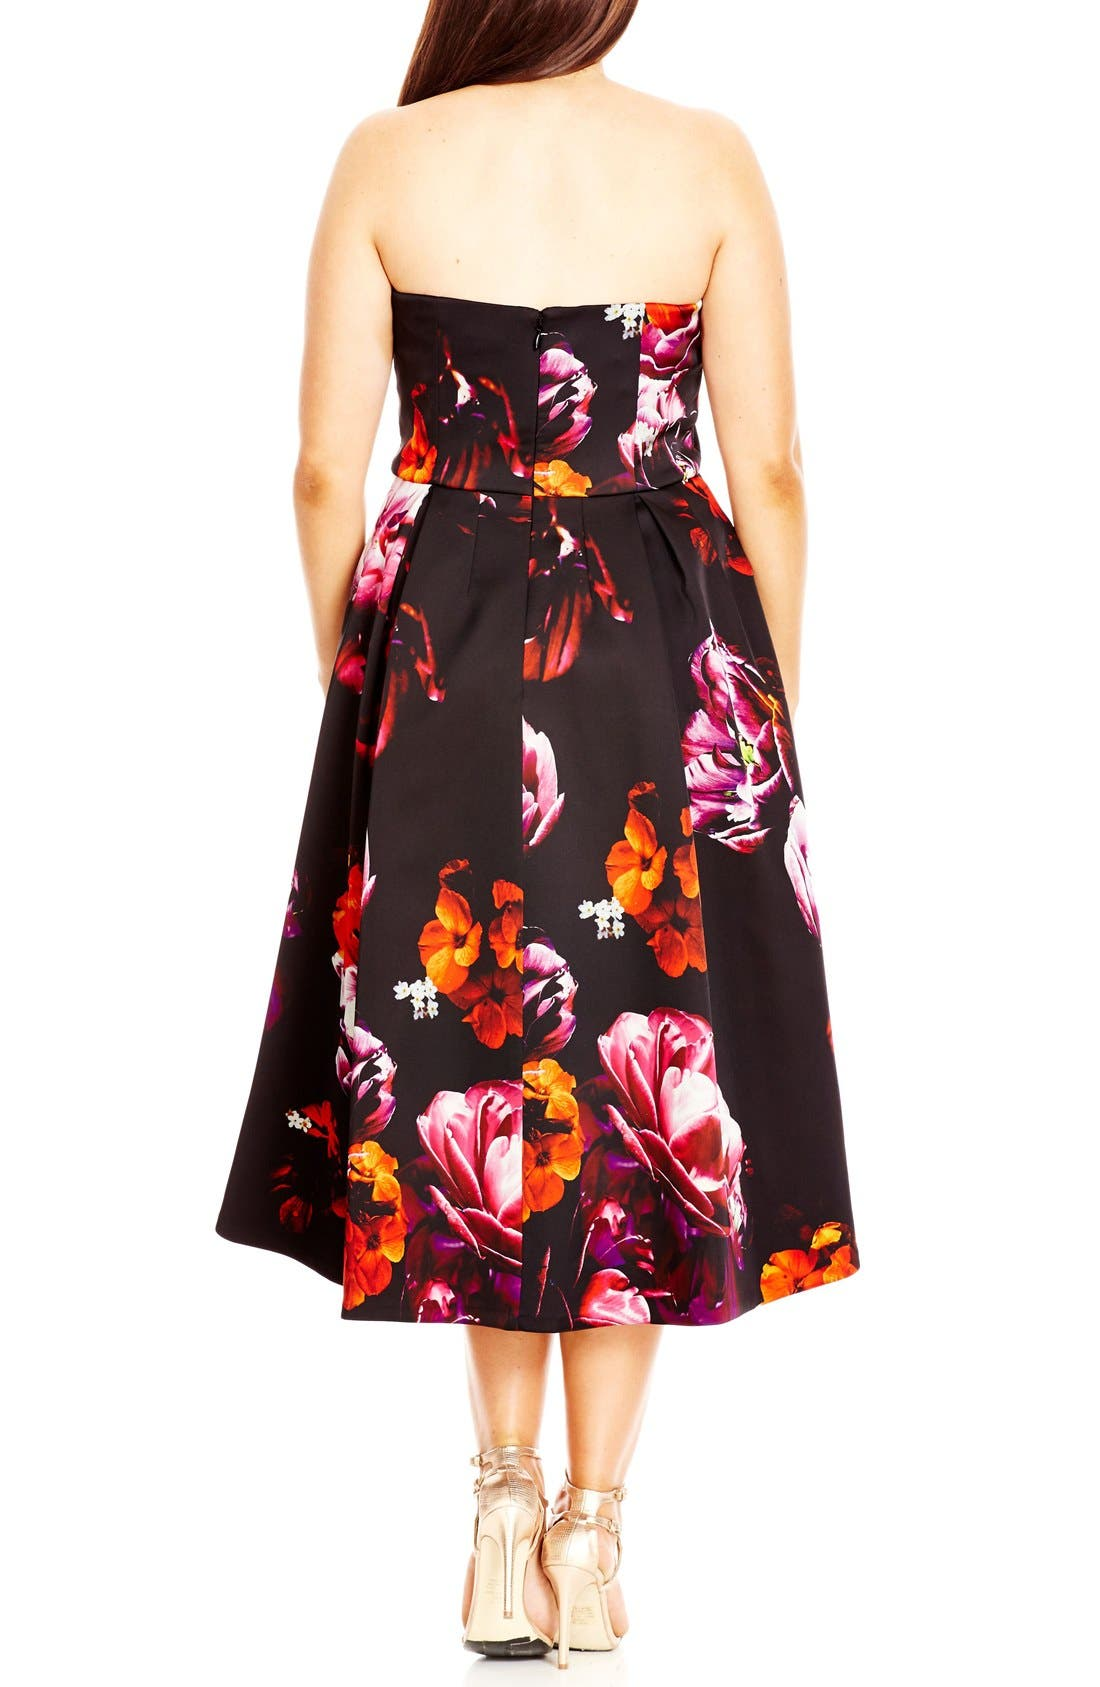 'Floral Magic' Floral Print Strapless High/Low Dress,                             Alternate thumbnail 2, color,                             001